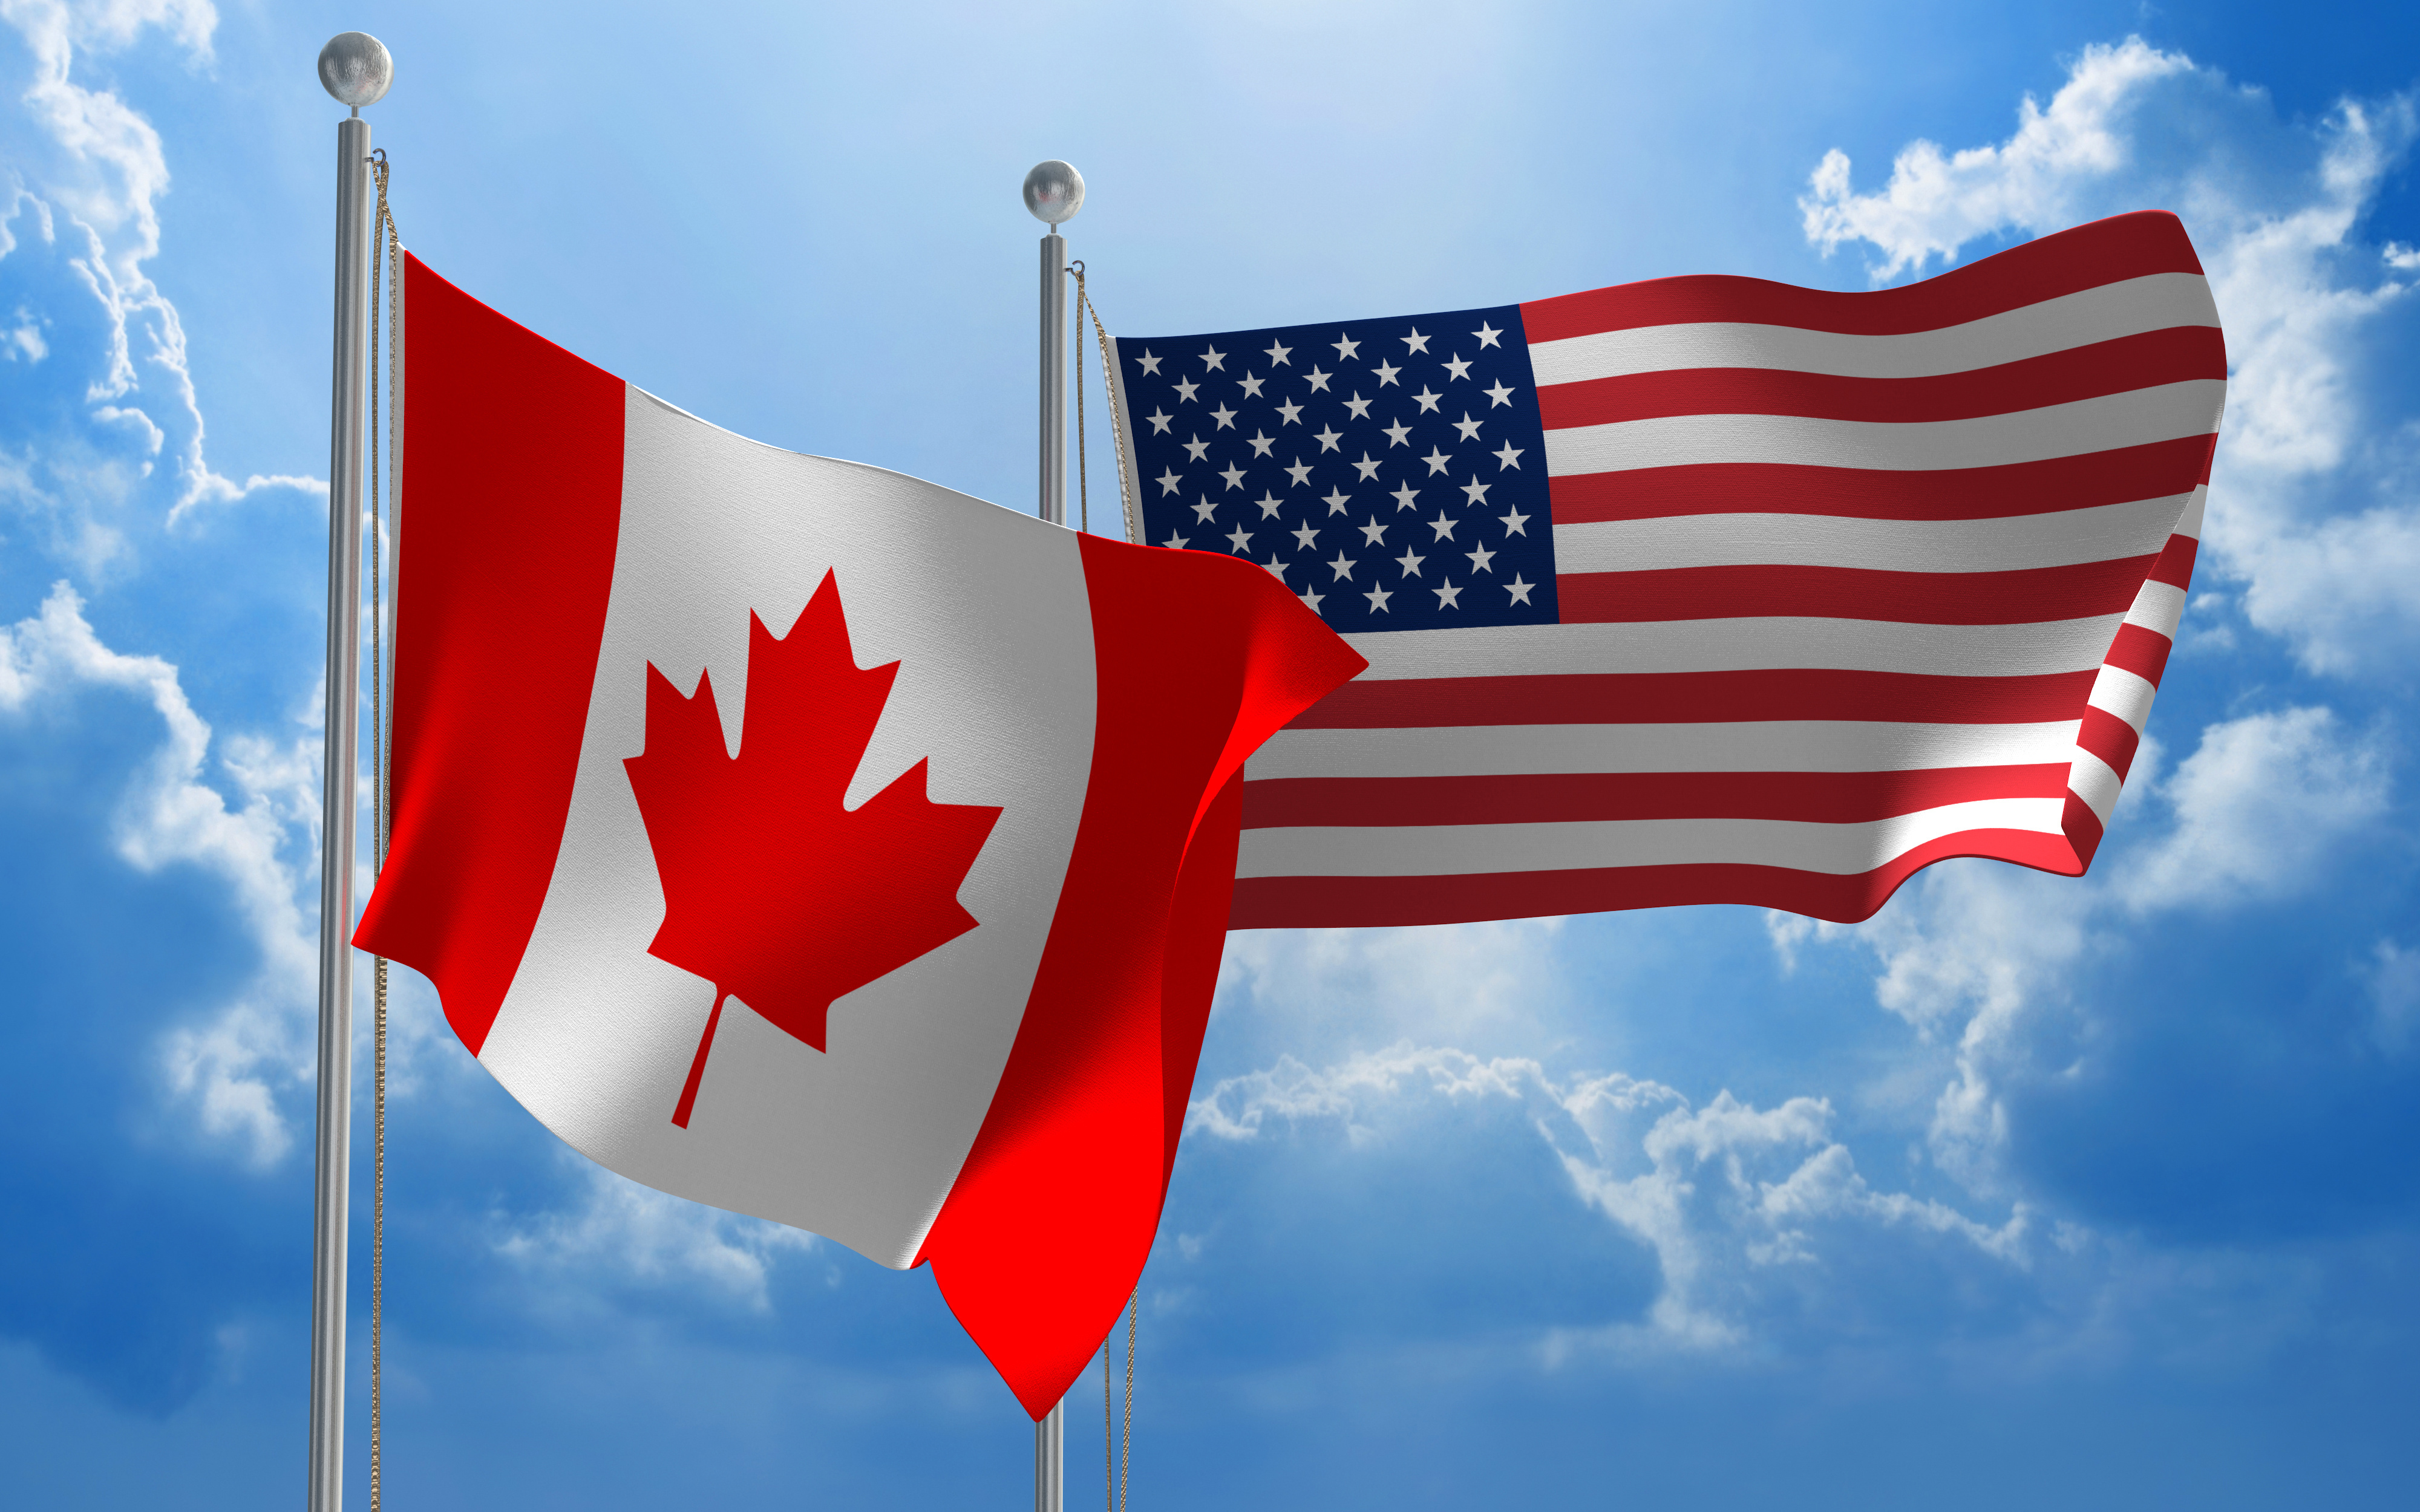 canada and the united states Jesuits of canada and the united states, washington, dc 16k likes founded in 1540 / the largest religious order of priests and brothers in the world.